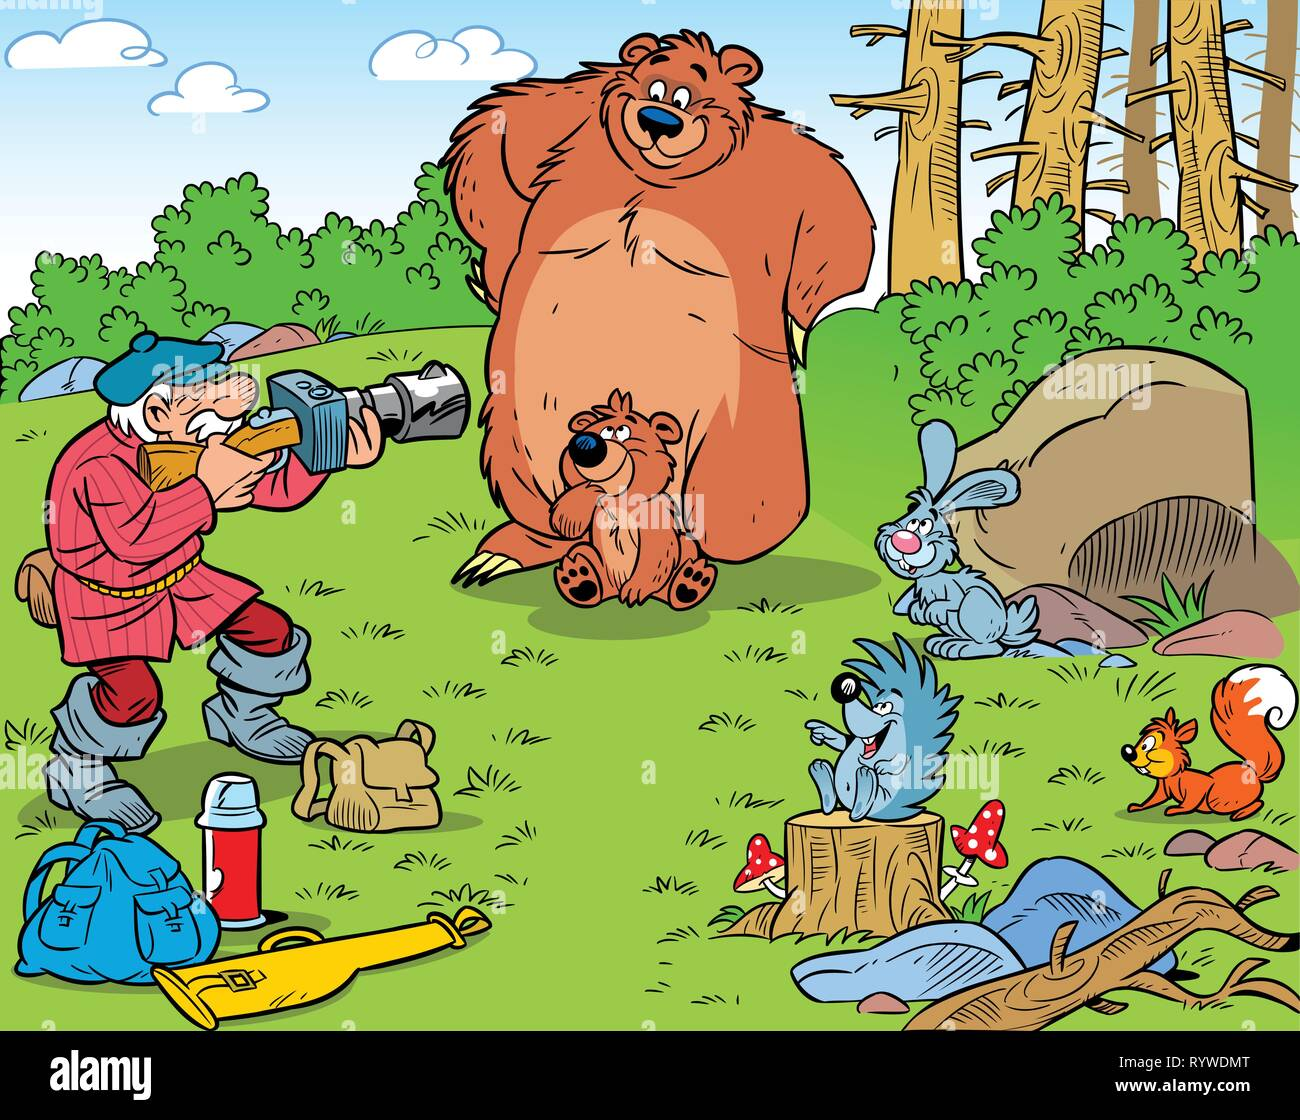 The illustration shows a hunter photographing wild animals. Illustration done in an amusing cartoon style. - Stock Vector